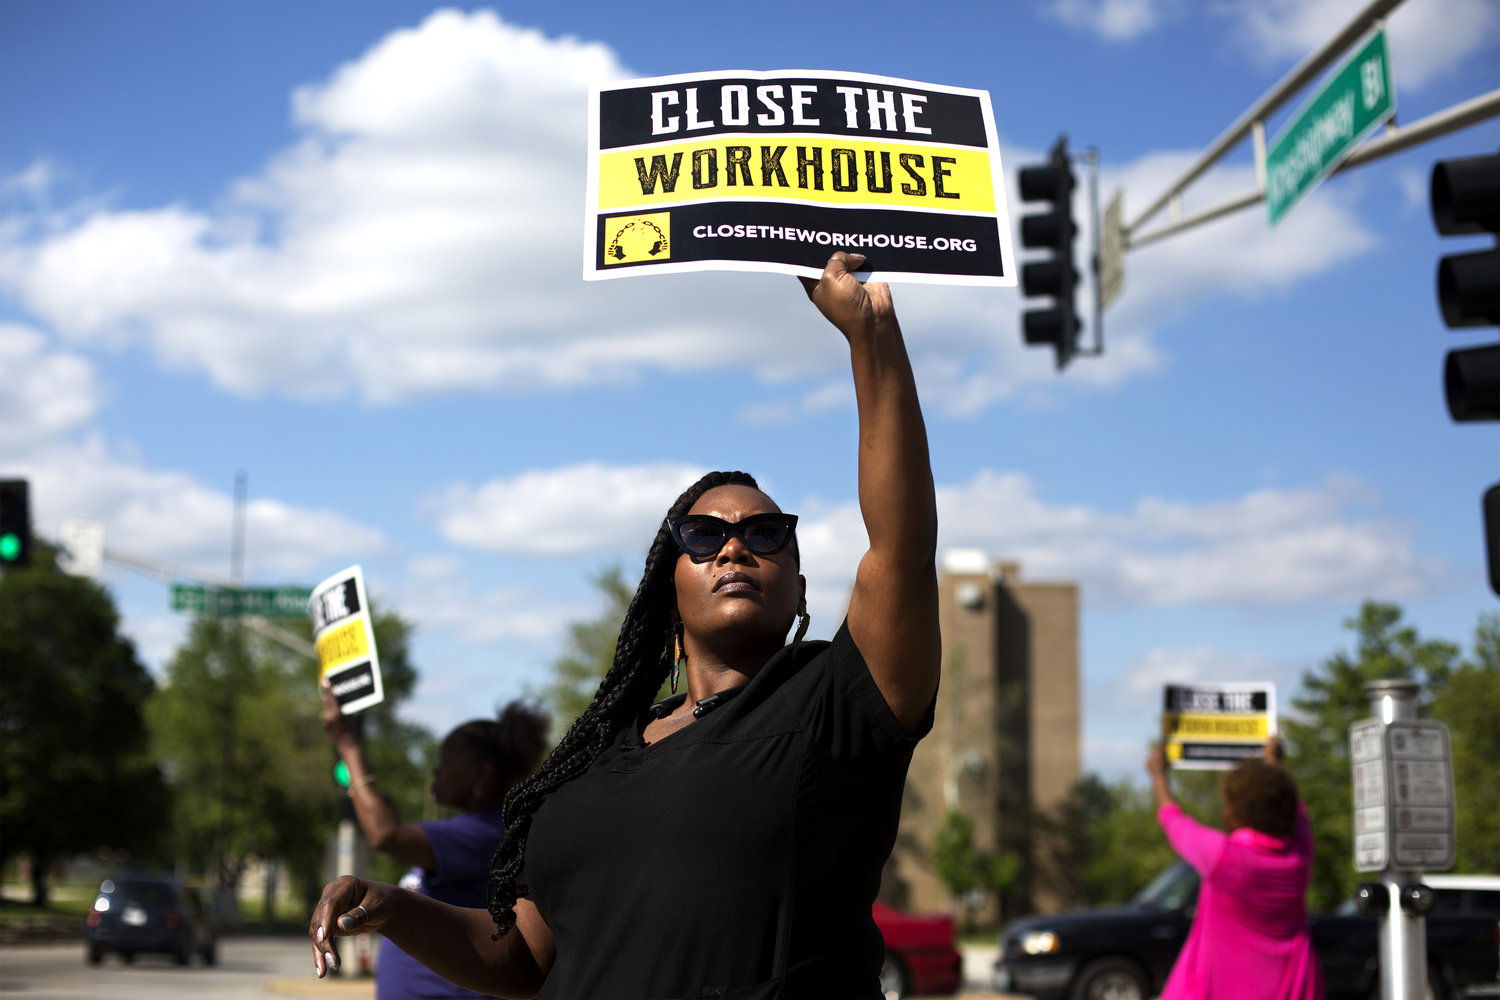 Caption: Inex Bordeaux holds up a sign while doing street outreach in north St. Louis to raise awareness about the Close the Workhouse campaign., Credit: Carolina Hidalgo